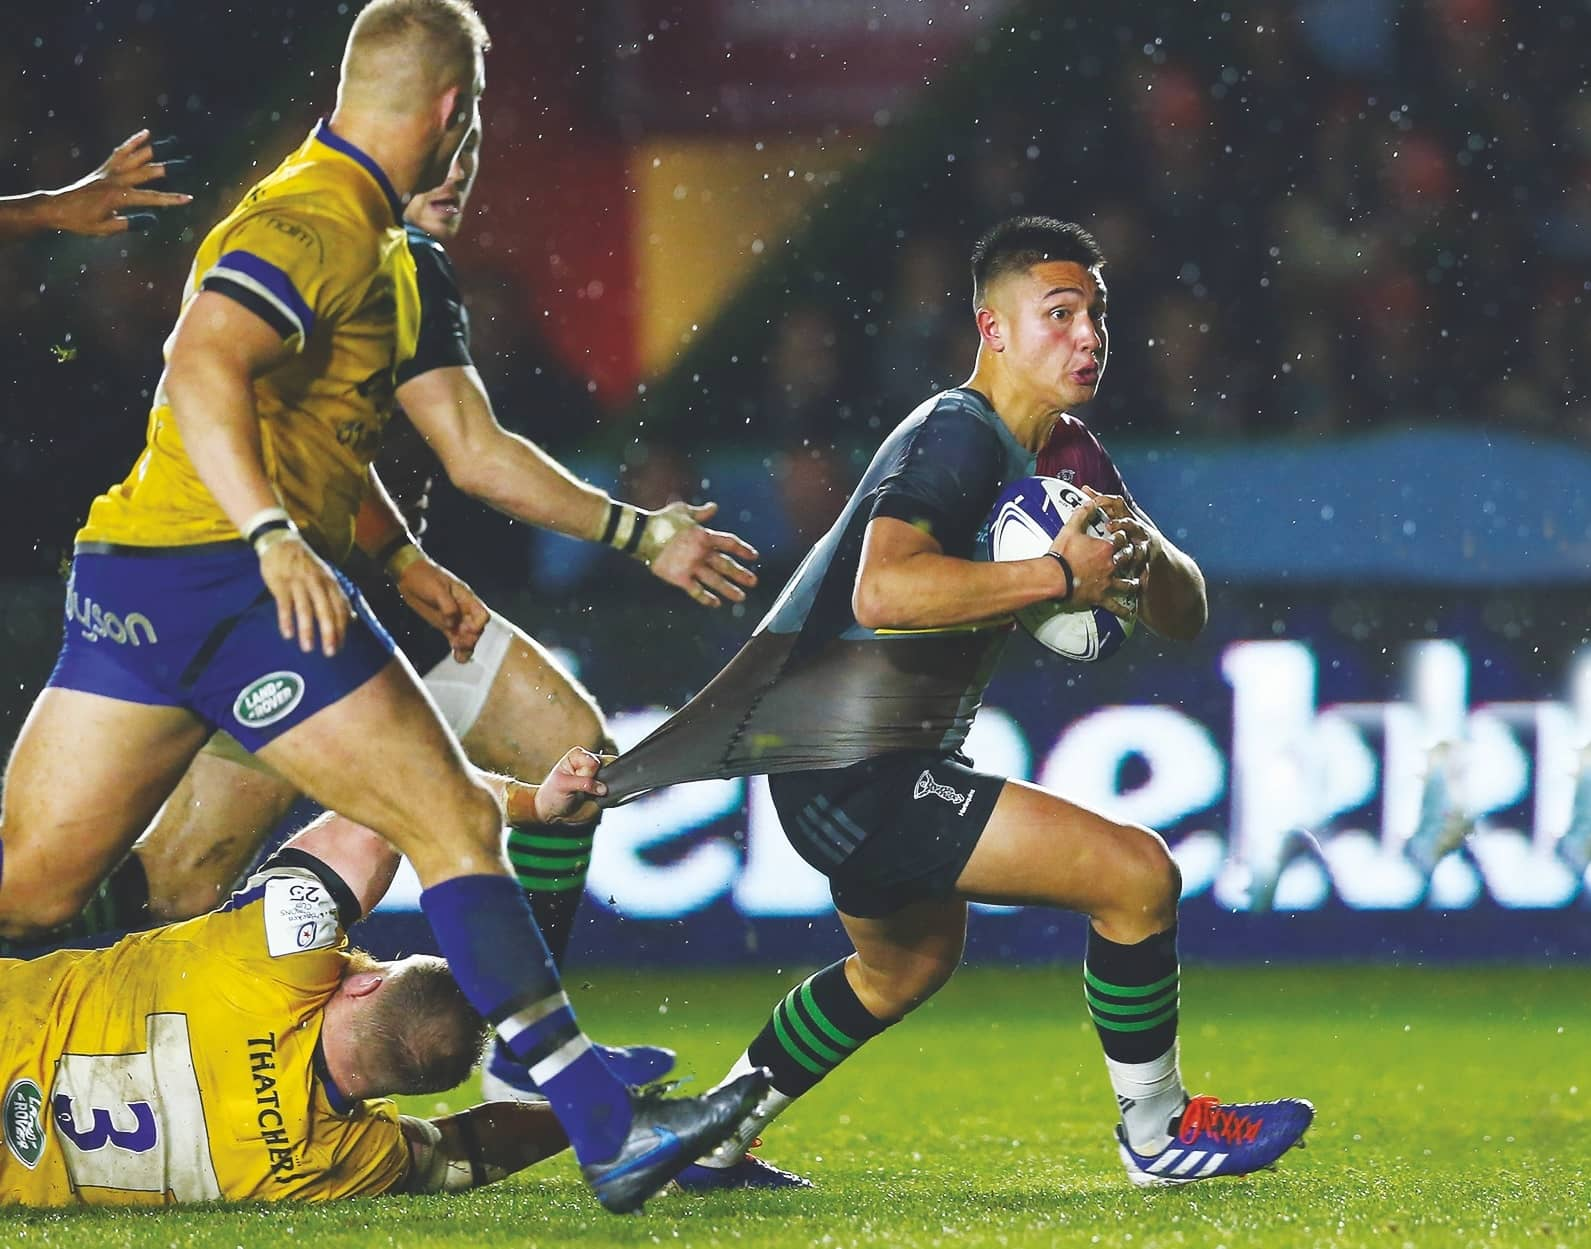 Quins Win Ugly To Keep Their Euro Dream Alive